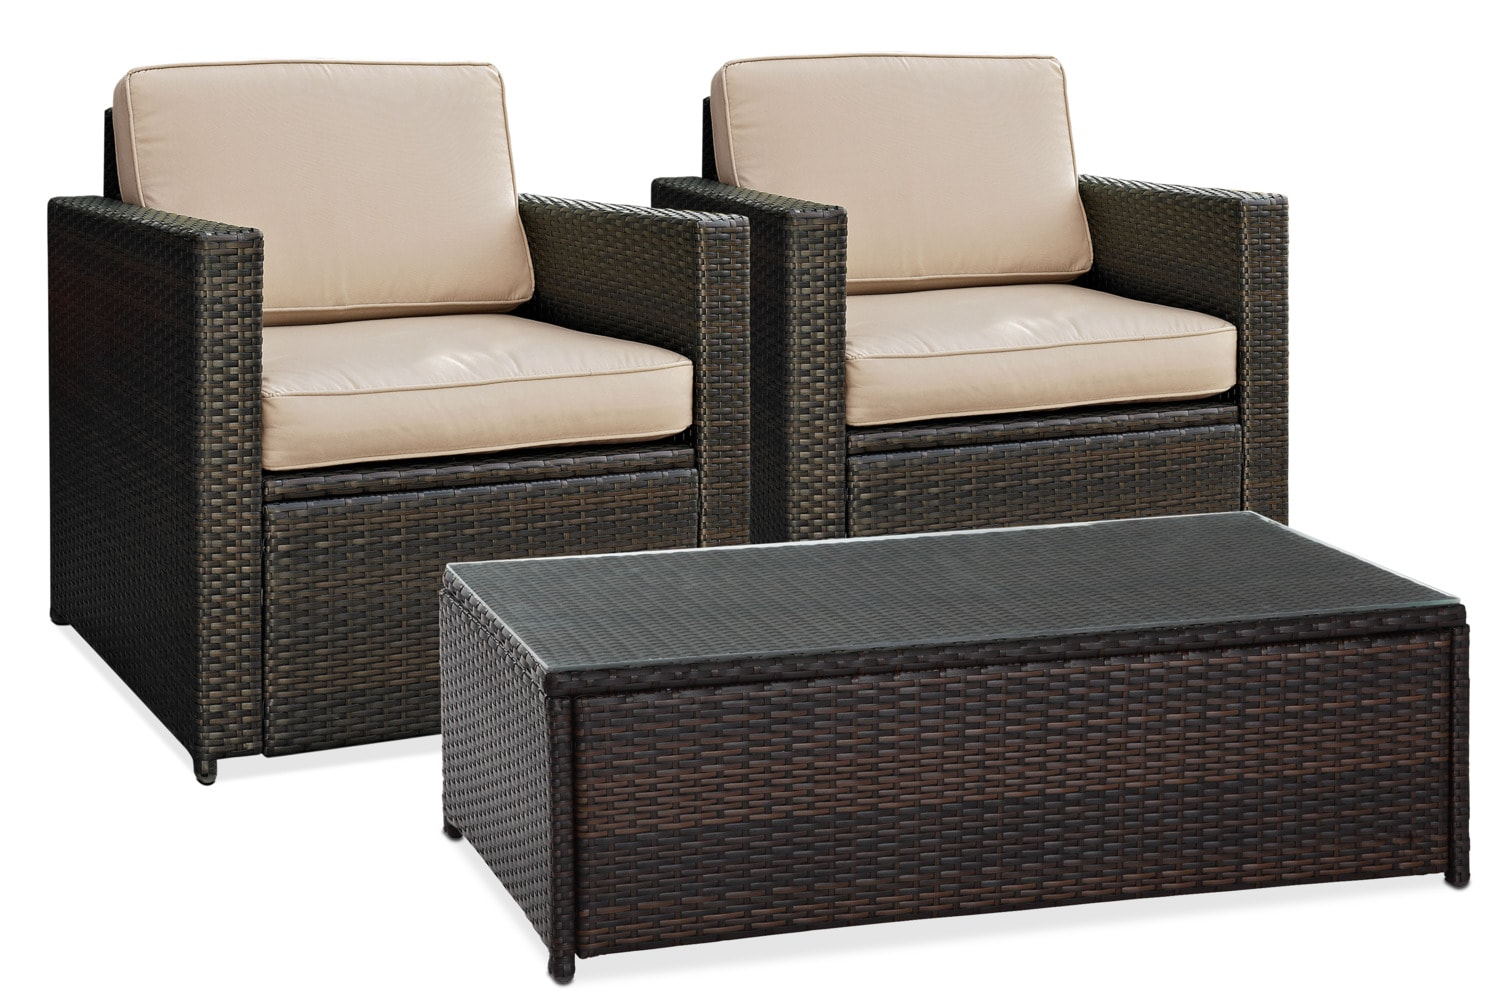 Outdoor Furniture - Aldo Set of 2 Outdoor Chairs and Coffee Table